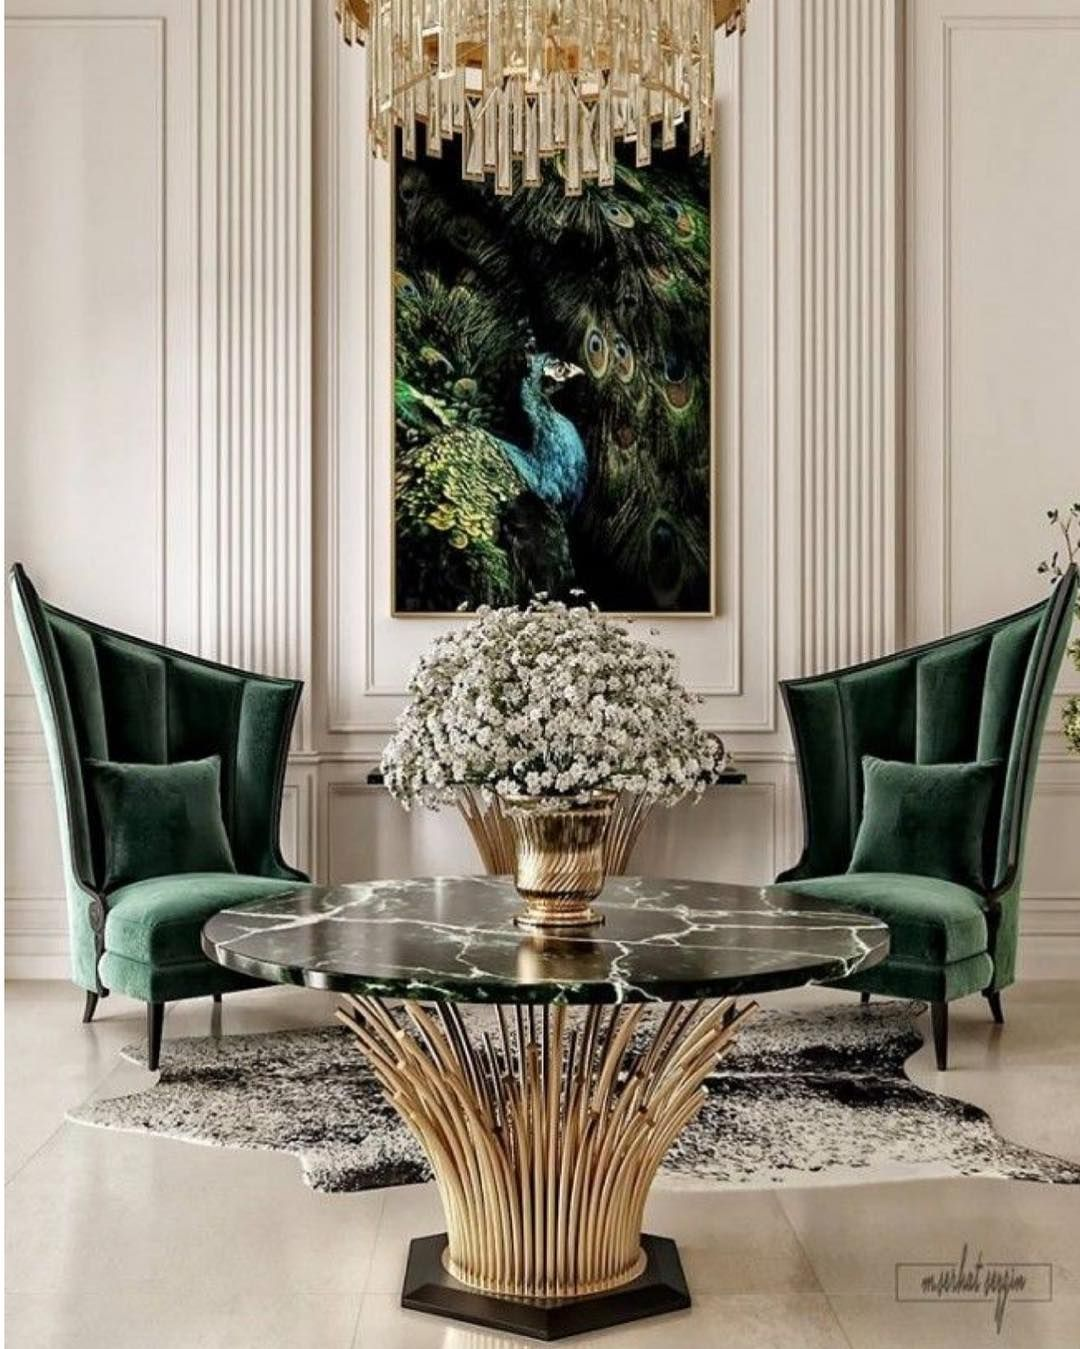 Pin By Nonkie Ntlaba On Home Decor Luxury Living Room House Interior Classic Interior Design